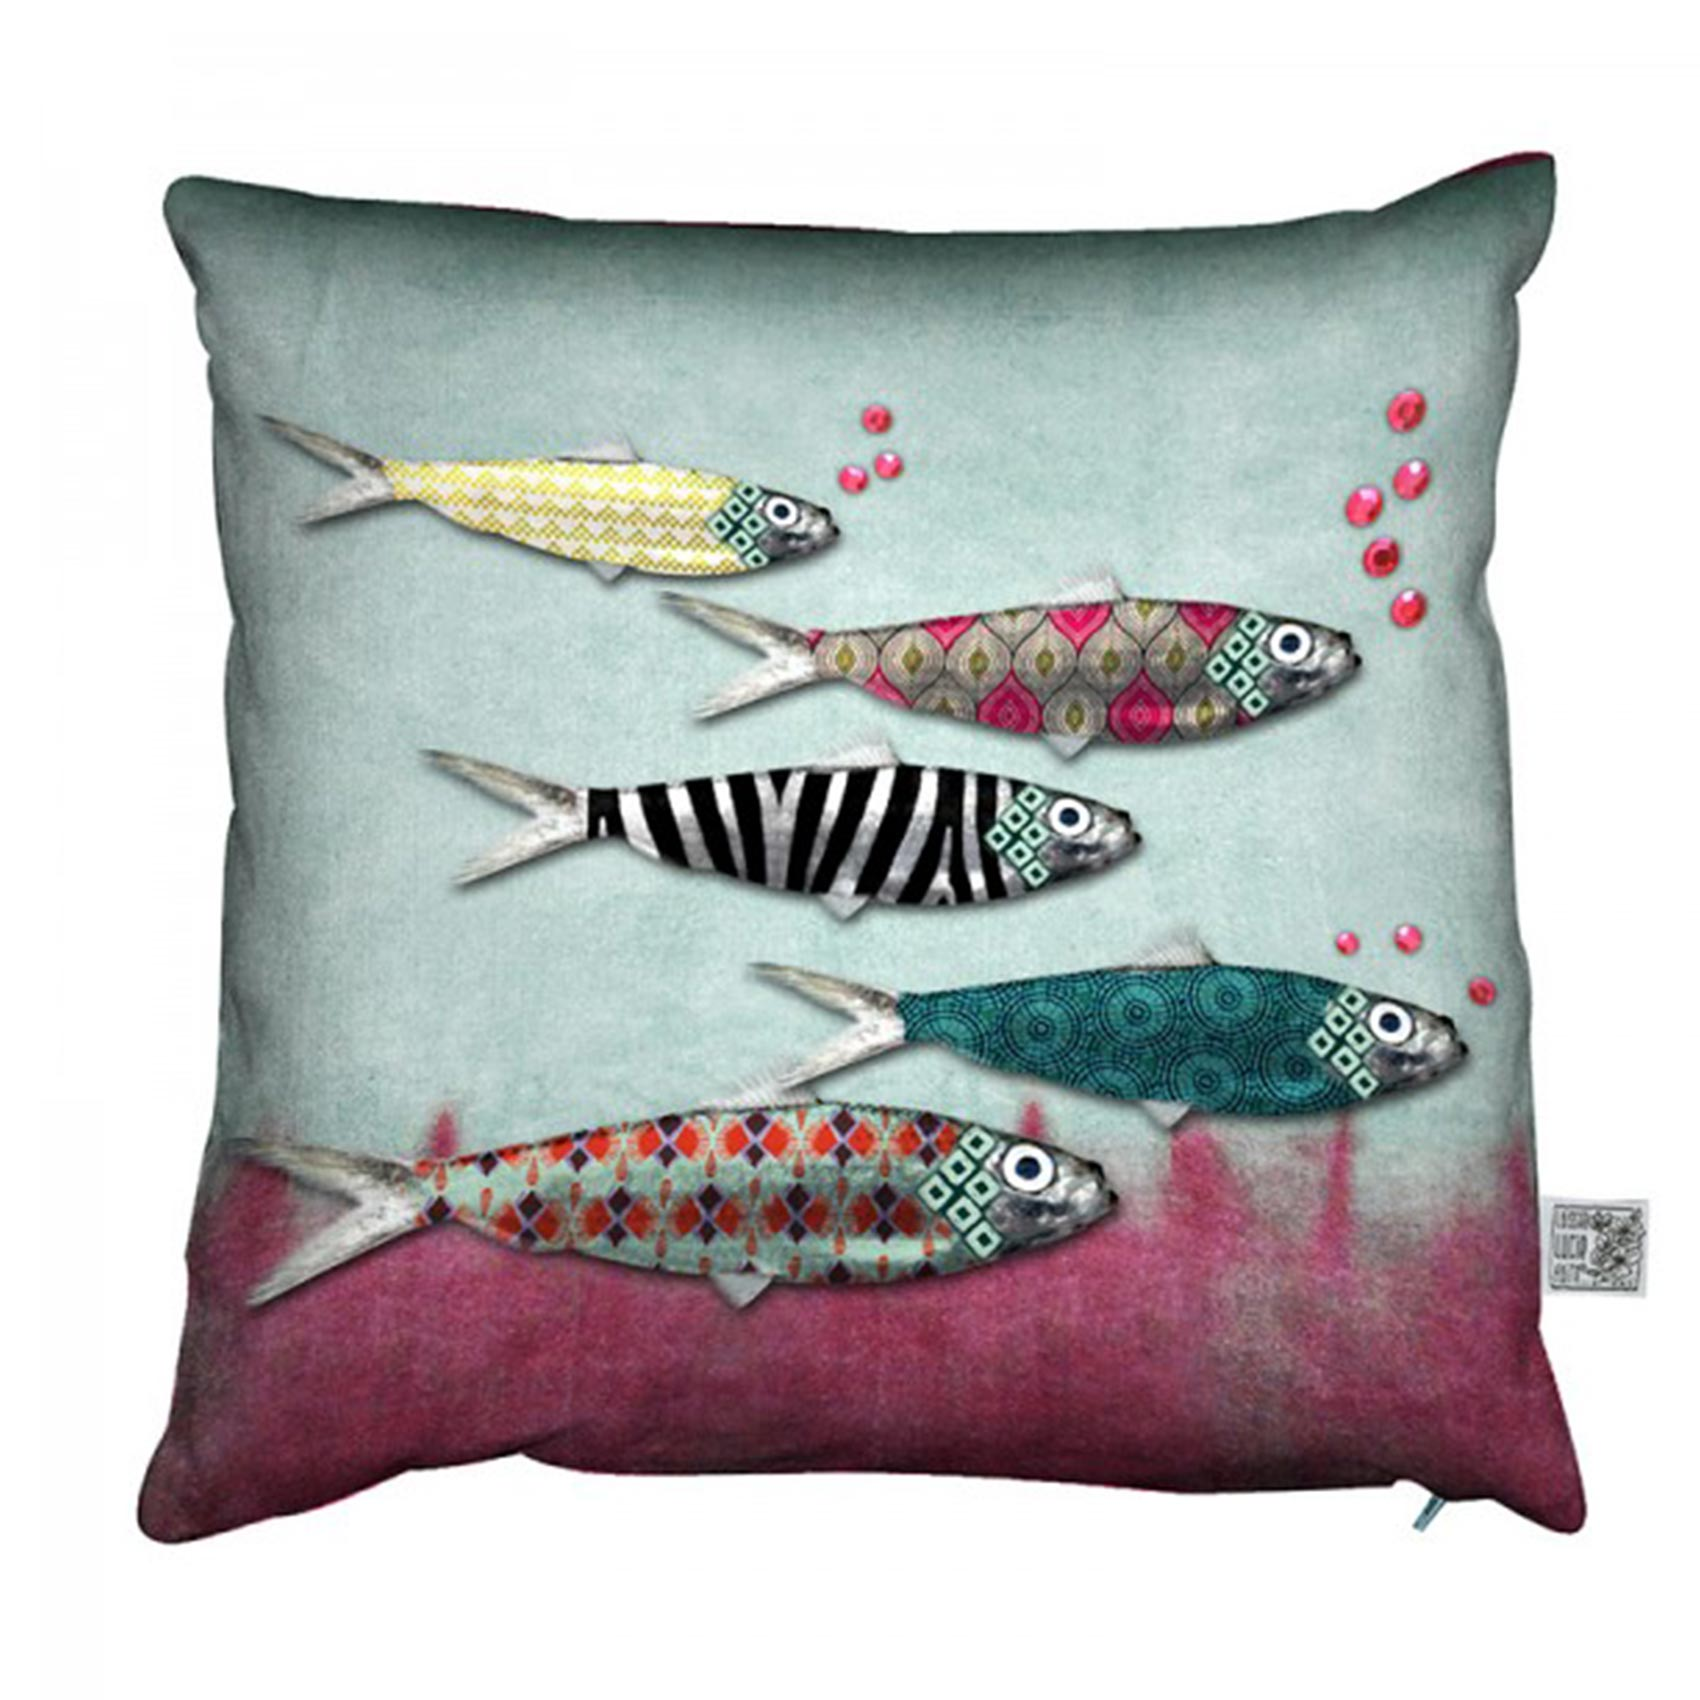 Design tendance cr ateur d 39 envies d co for Coussin deco